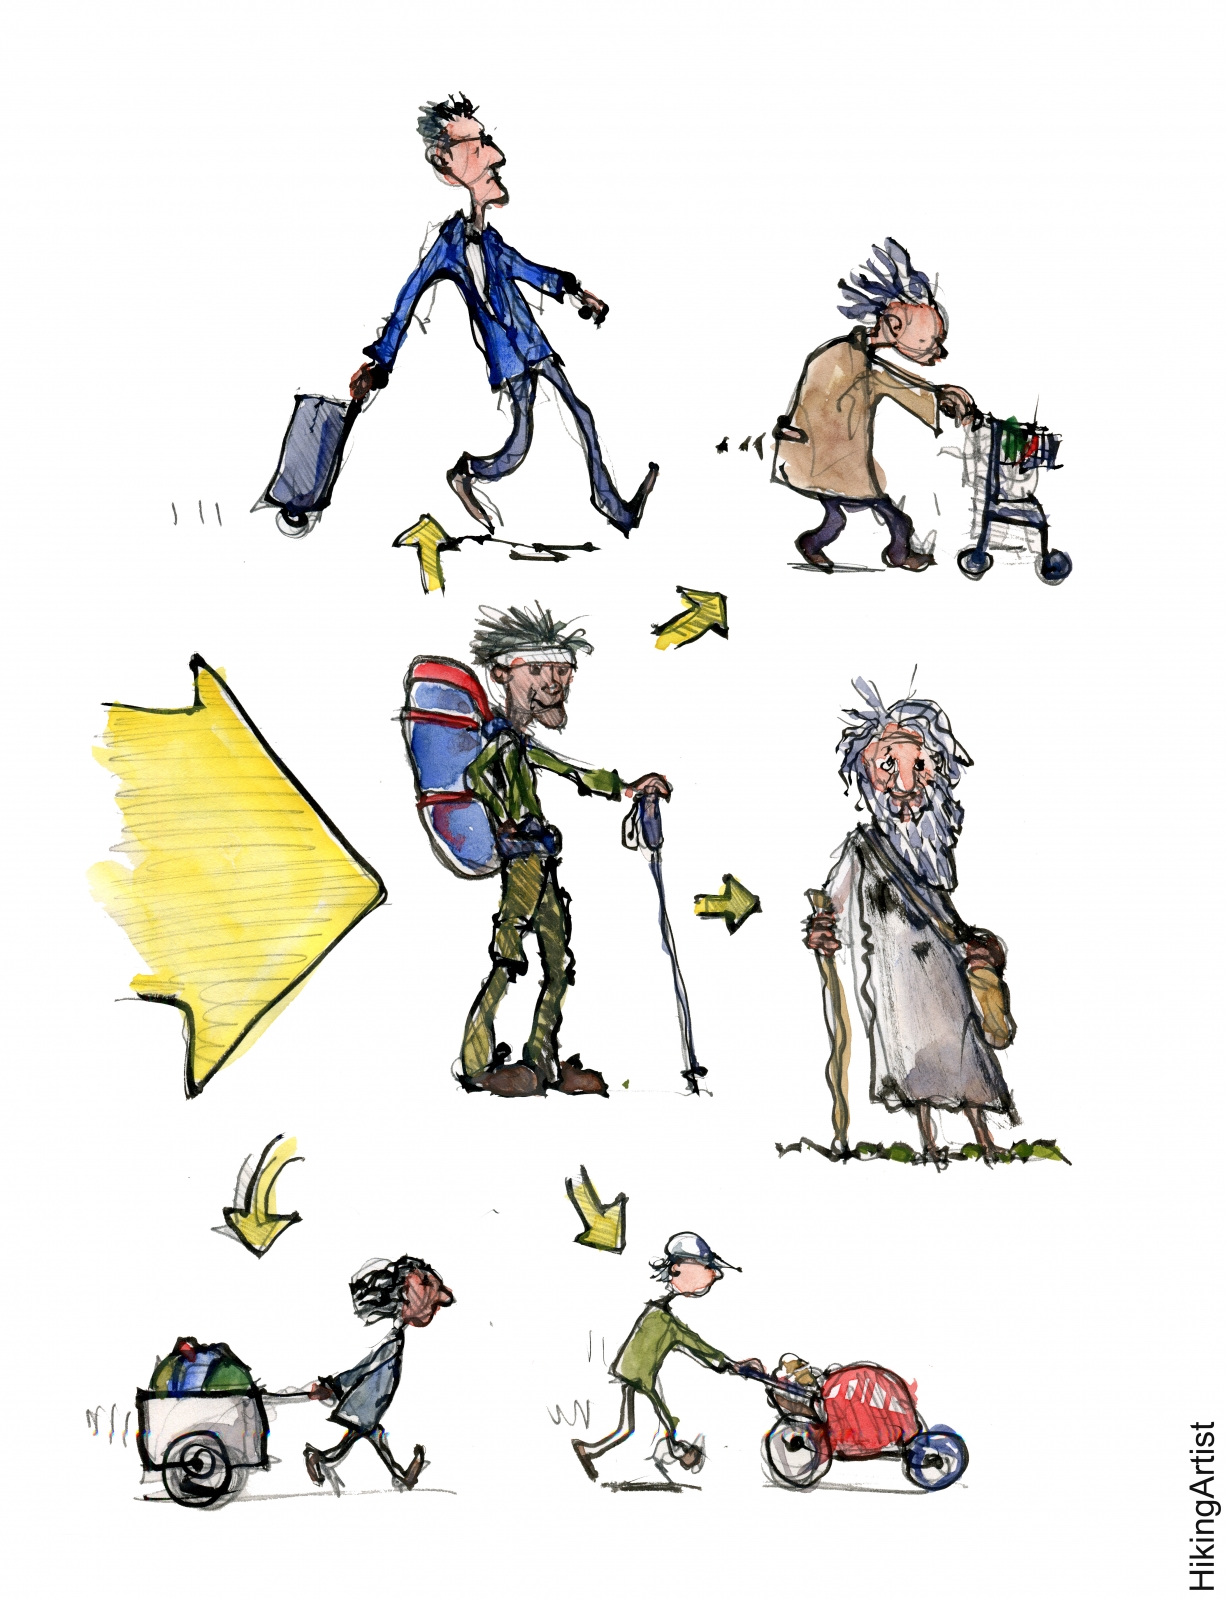 Drawing of different ways to carry luggage with wheels